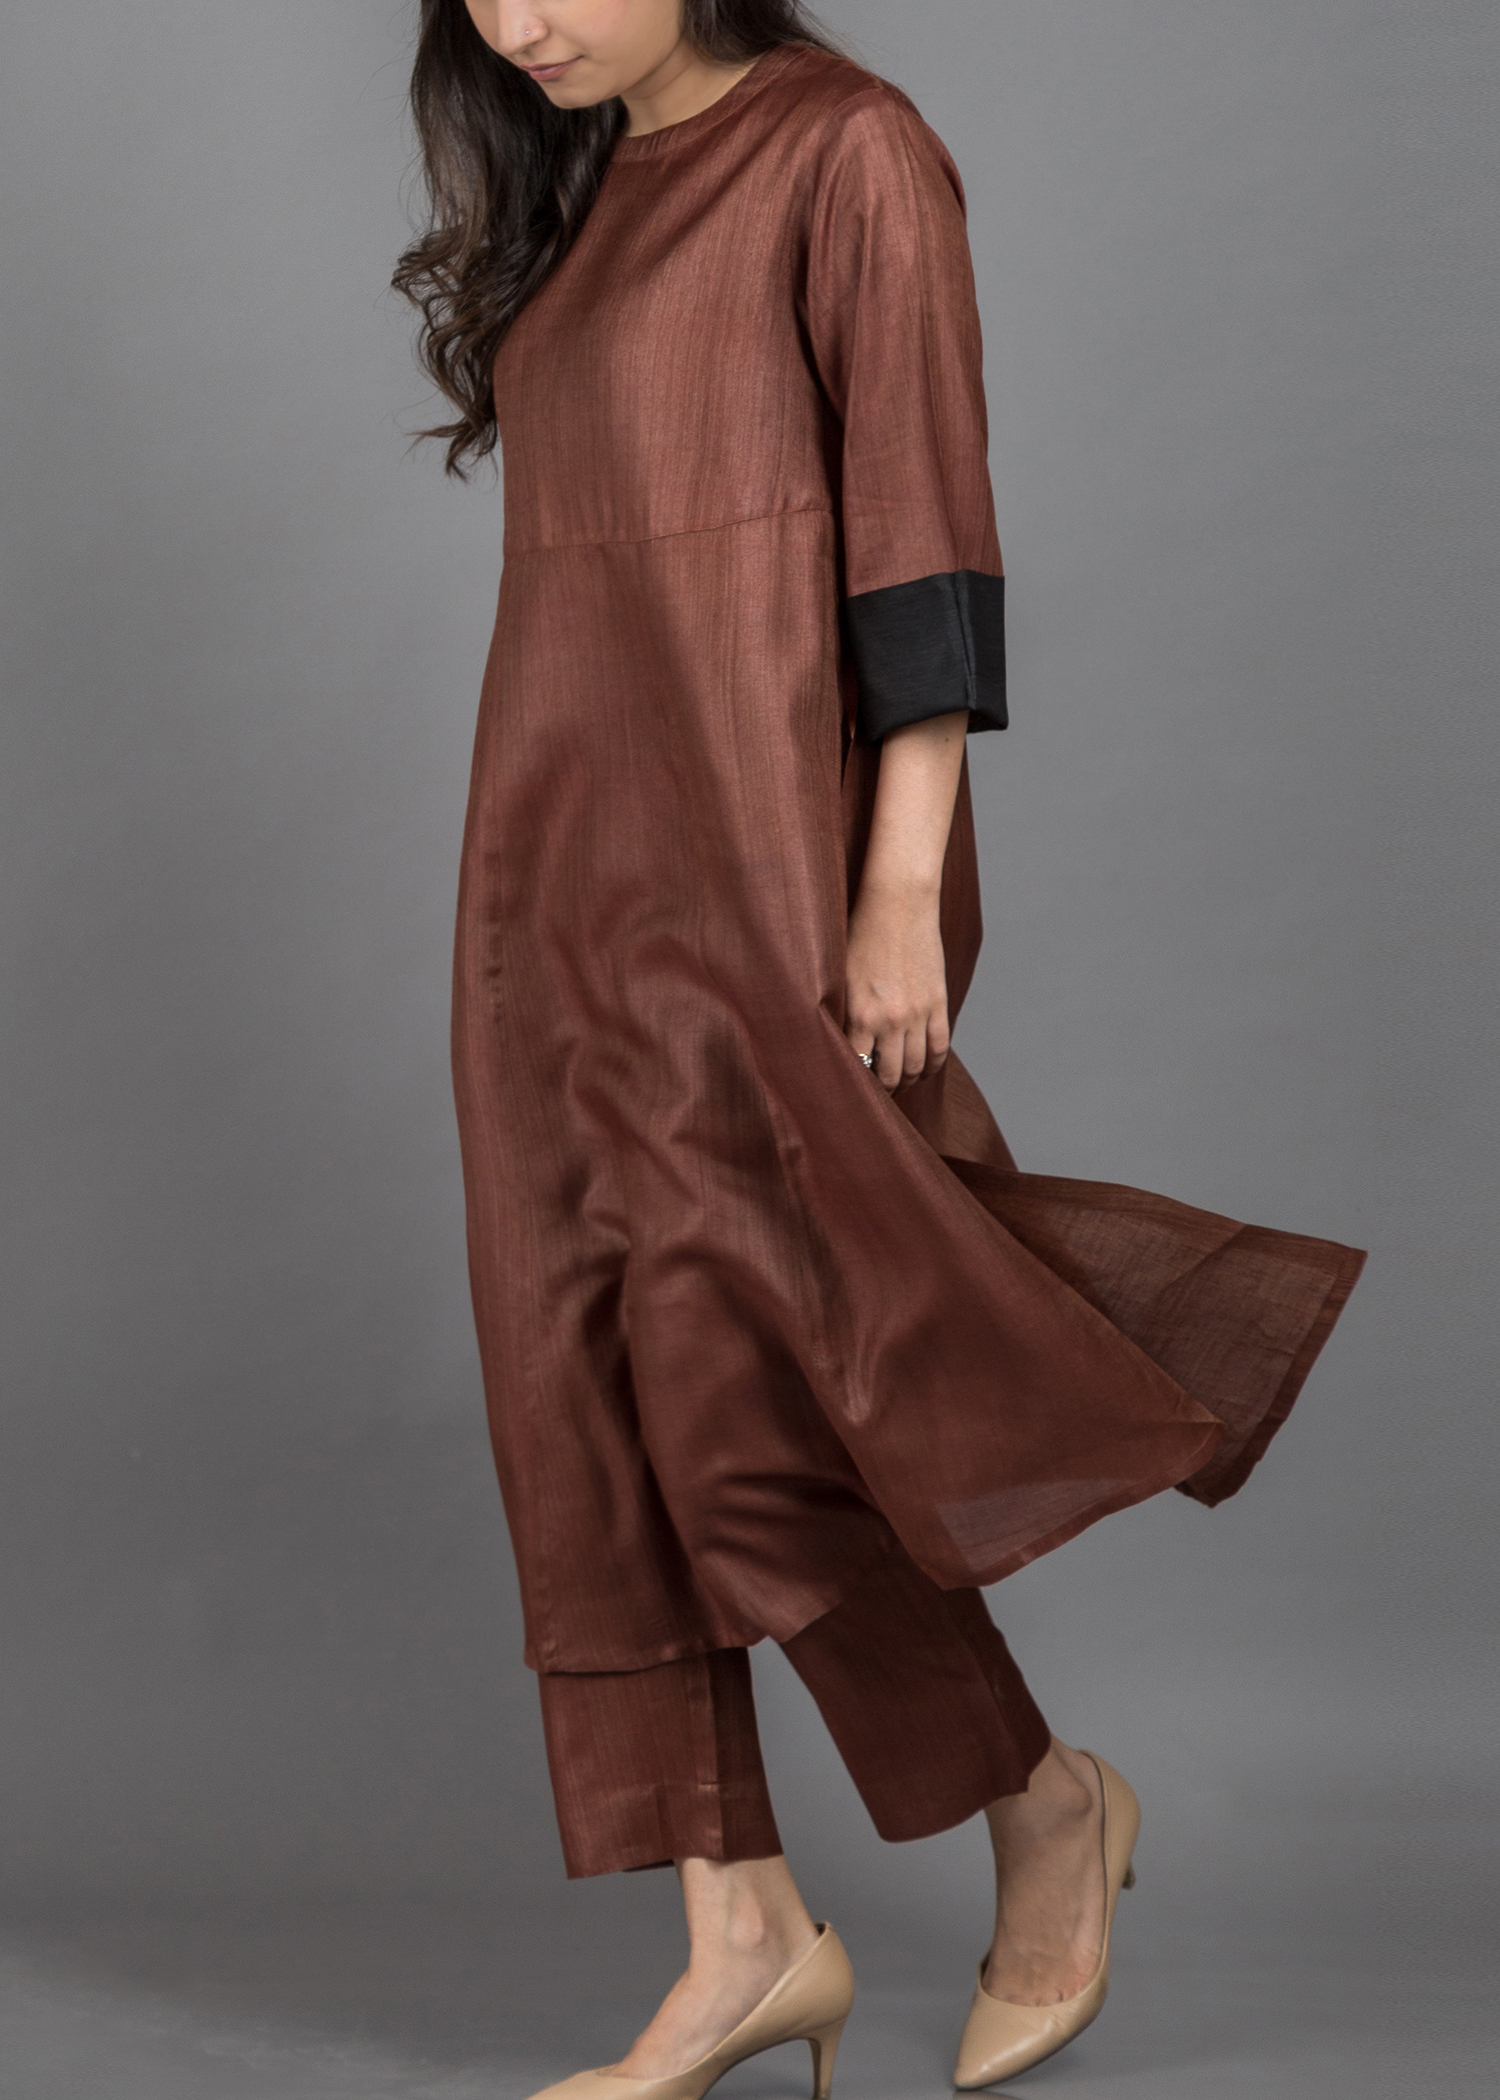 catalog/October-November 2017/brown silk 3.jpg